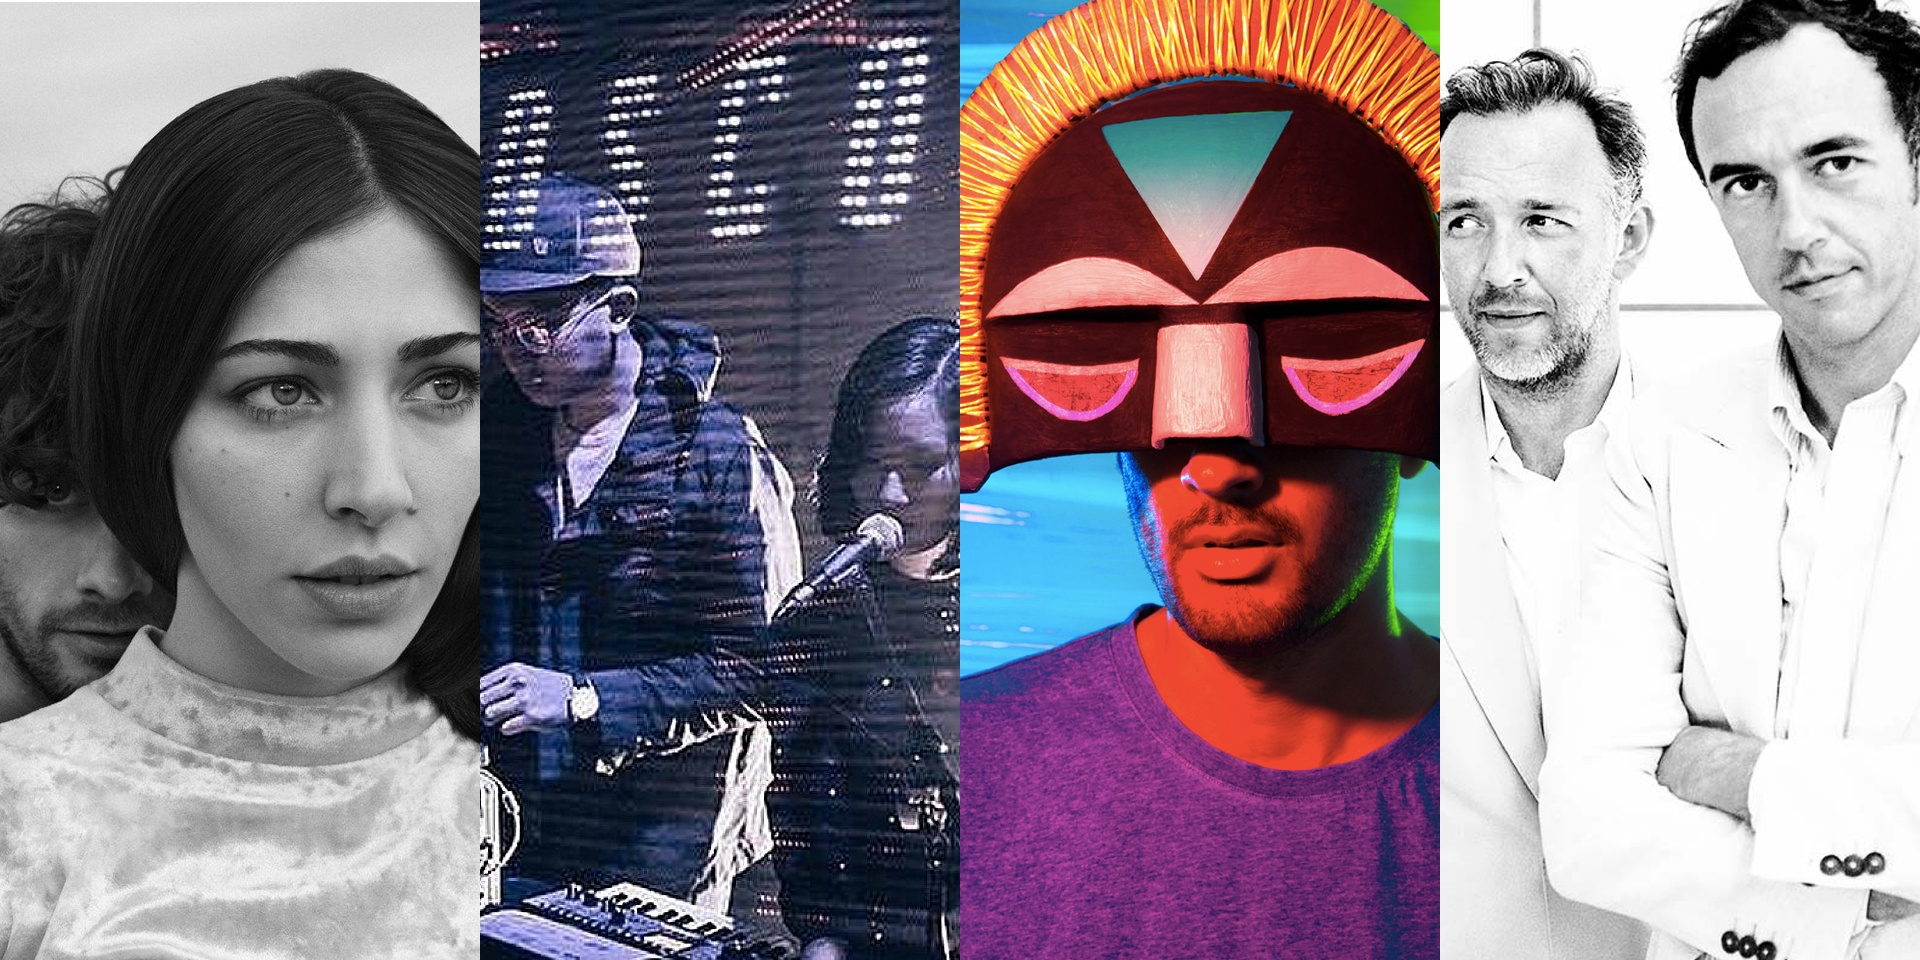 SBTRKT, 2manydjs, .gif and Chairlift among Neon Lights Festival's finalised line-up